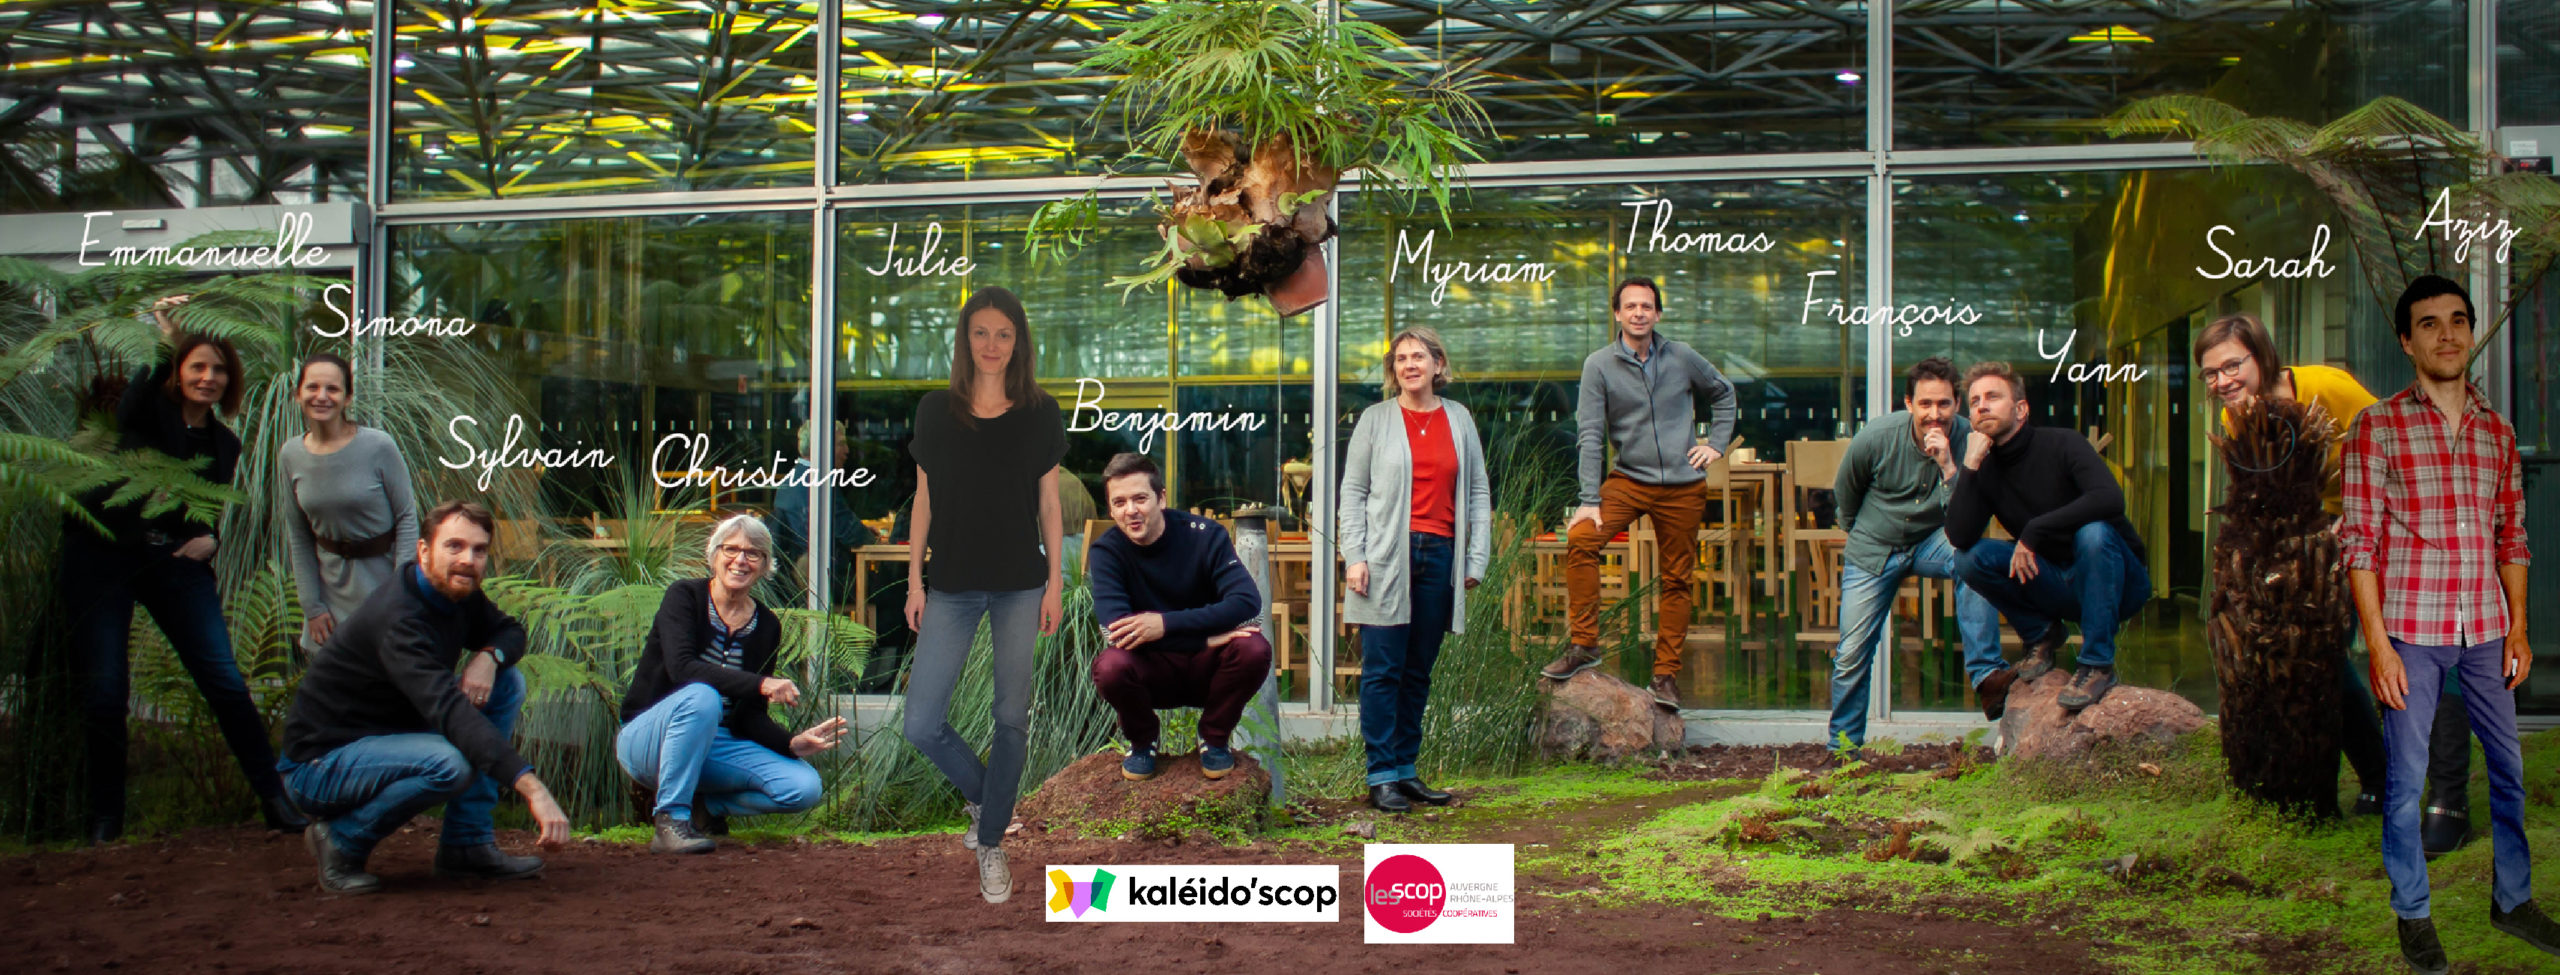 Kaleido'Scop contributes to the Congress of cooperative companies